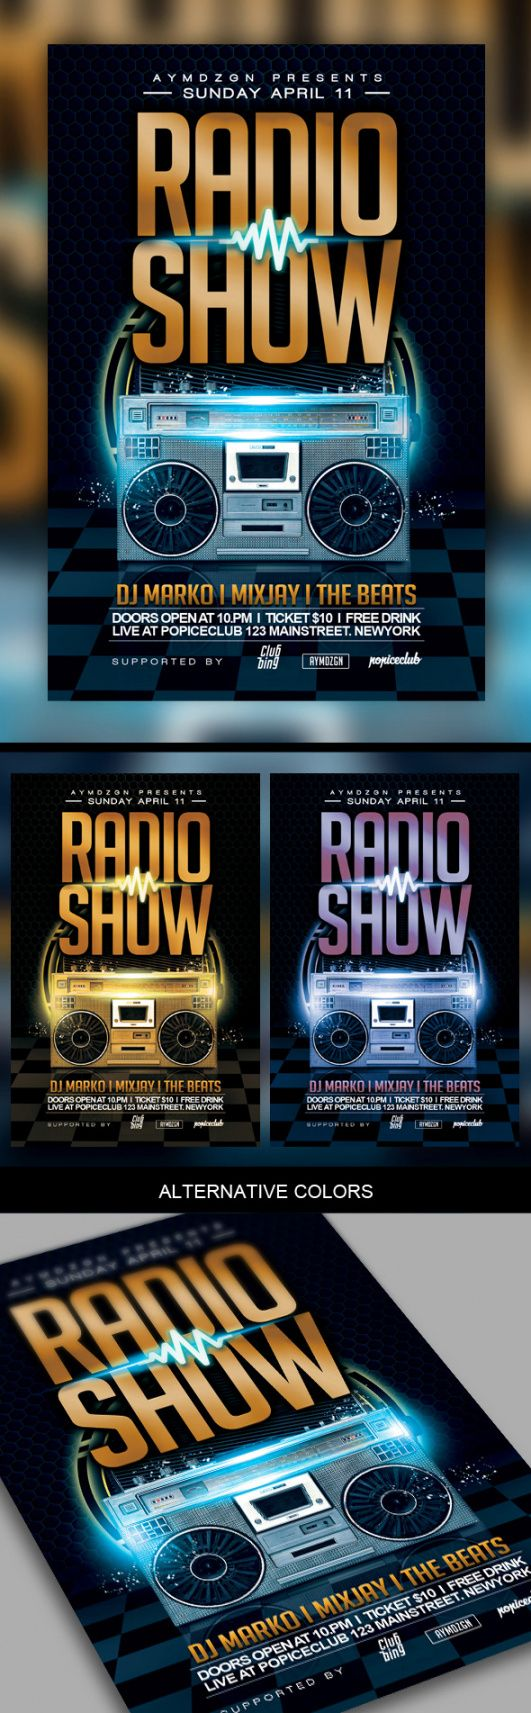 free radio show flyer template on behance radio show flyer template